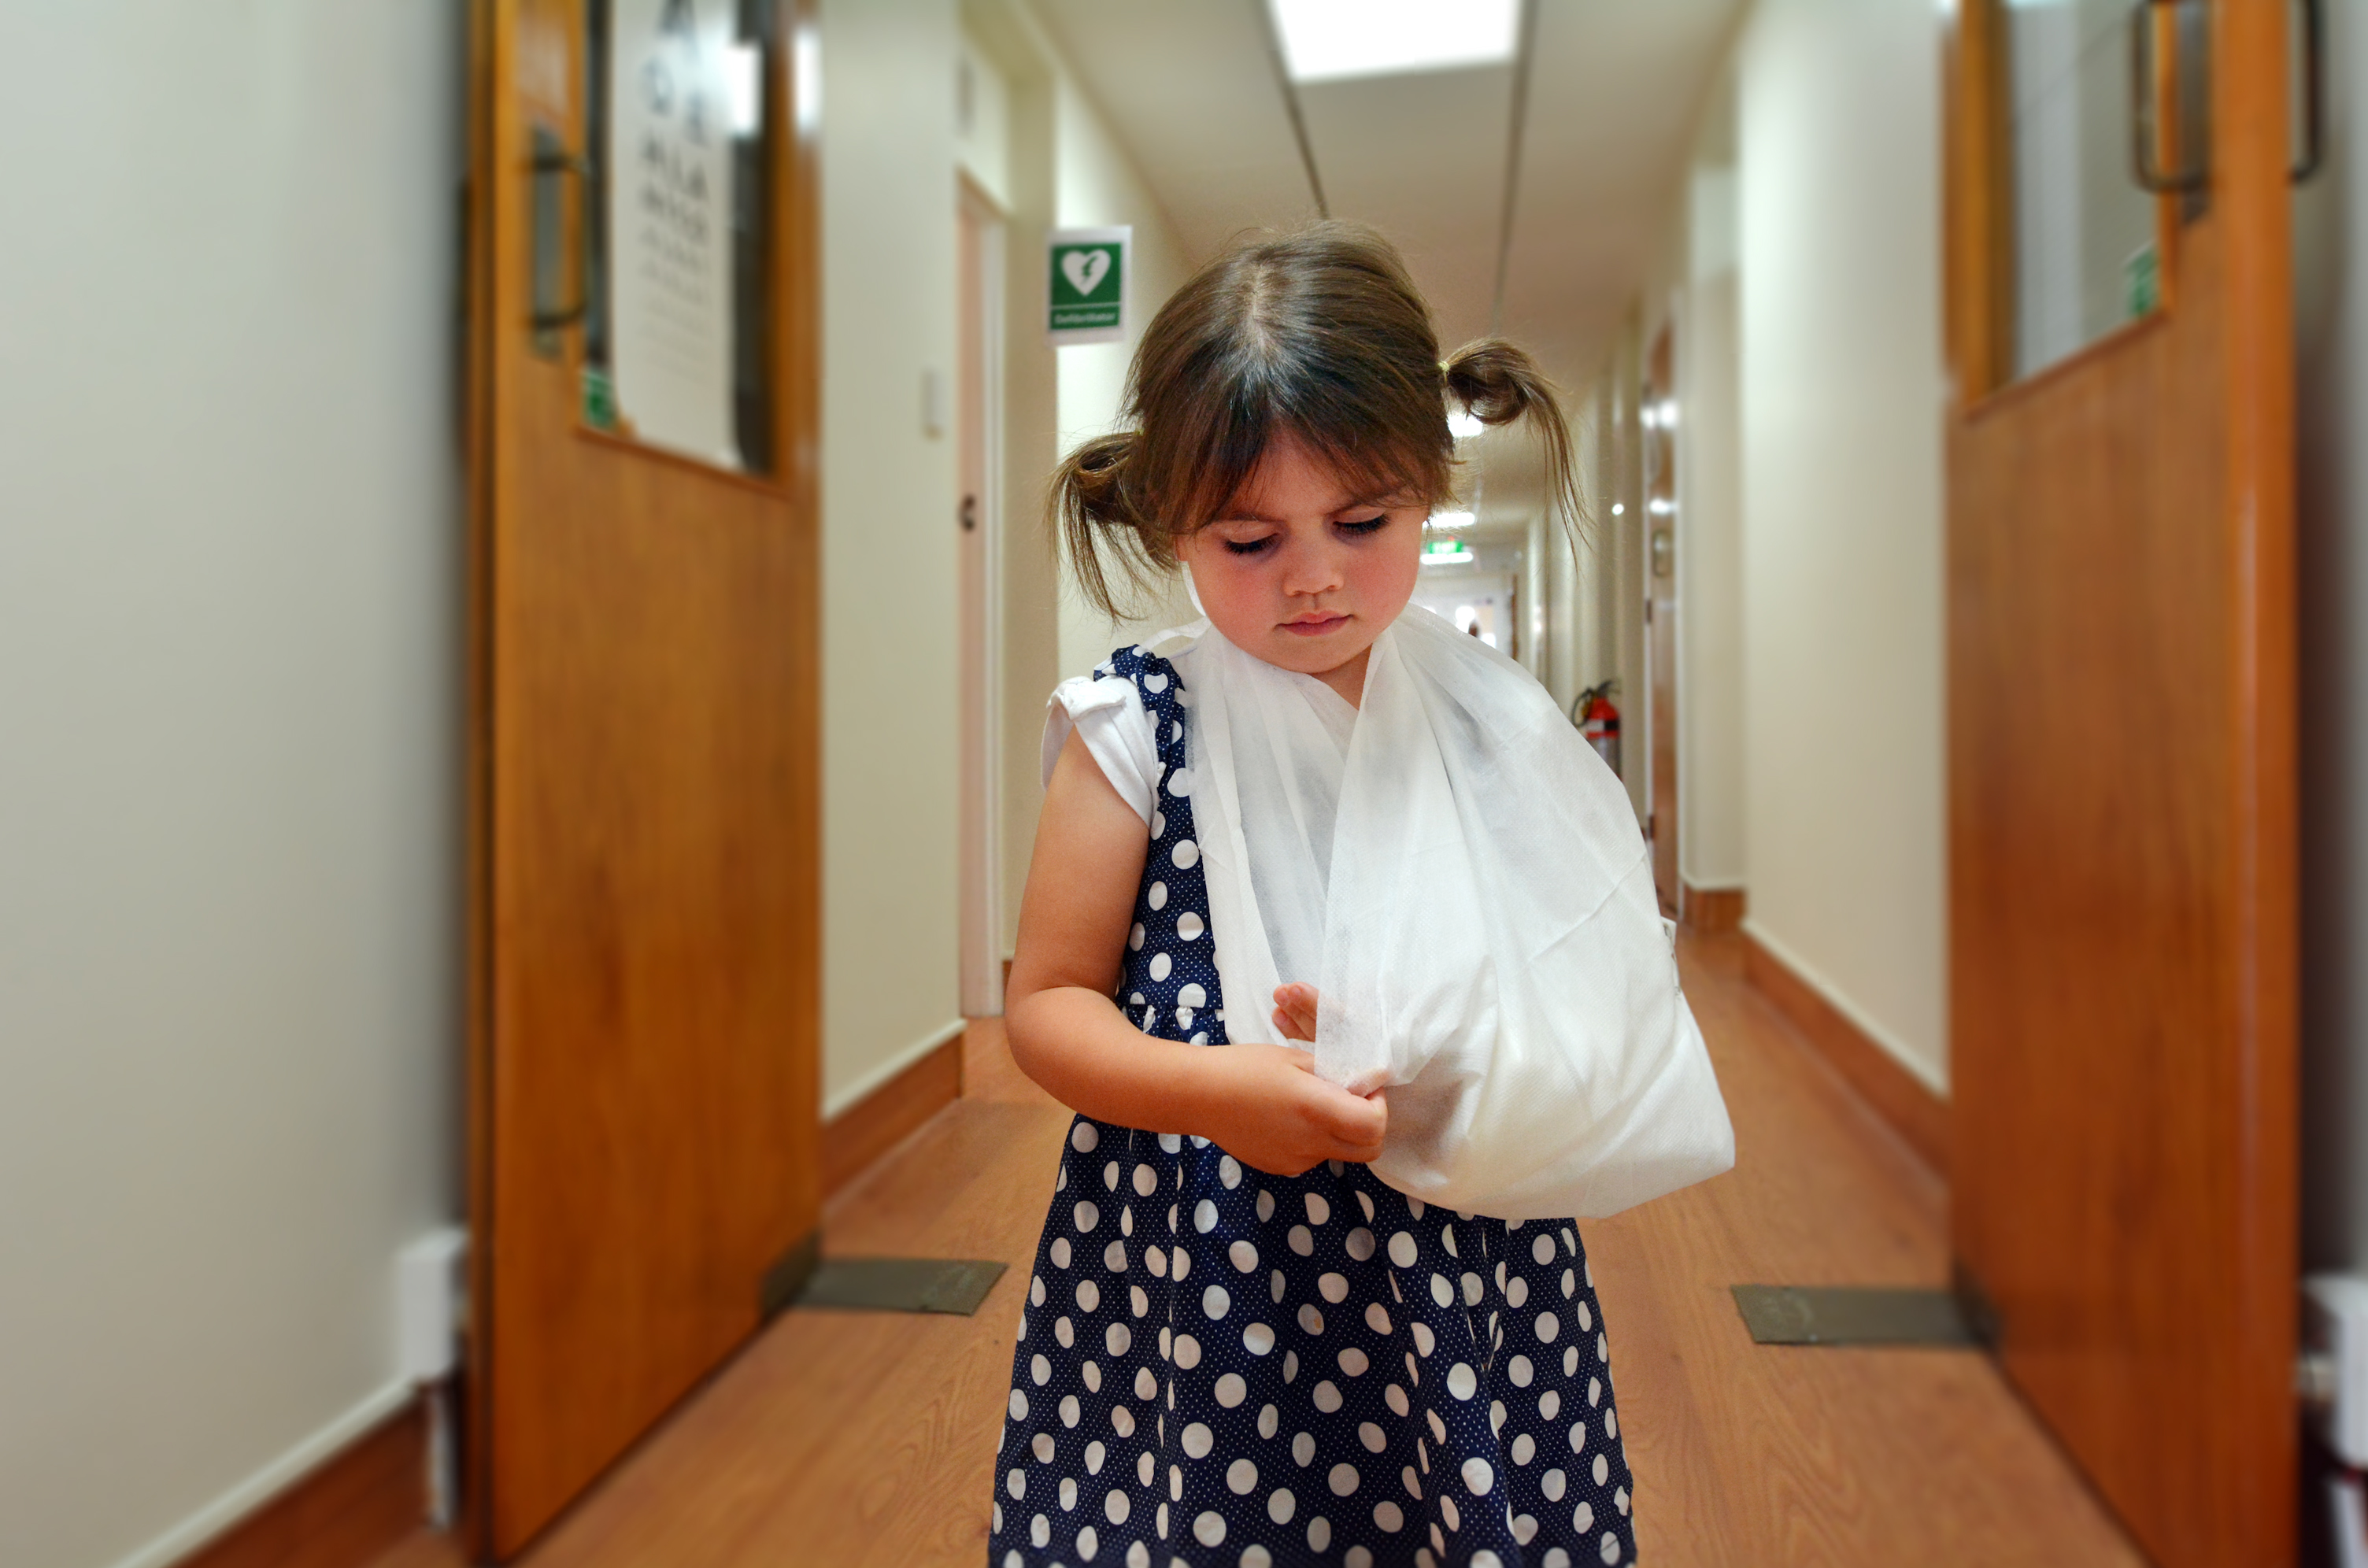 Sad little girl with a broken arm in hospital corridor.